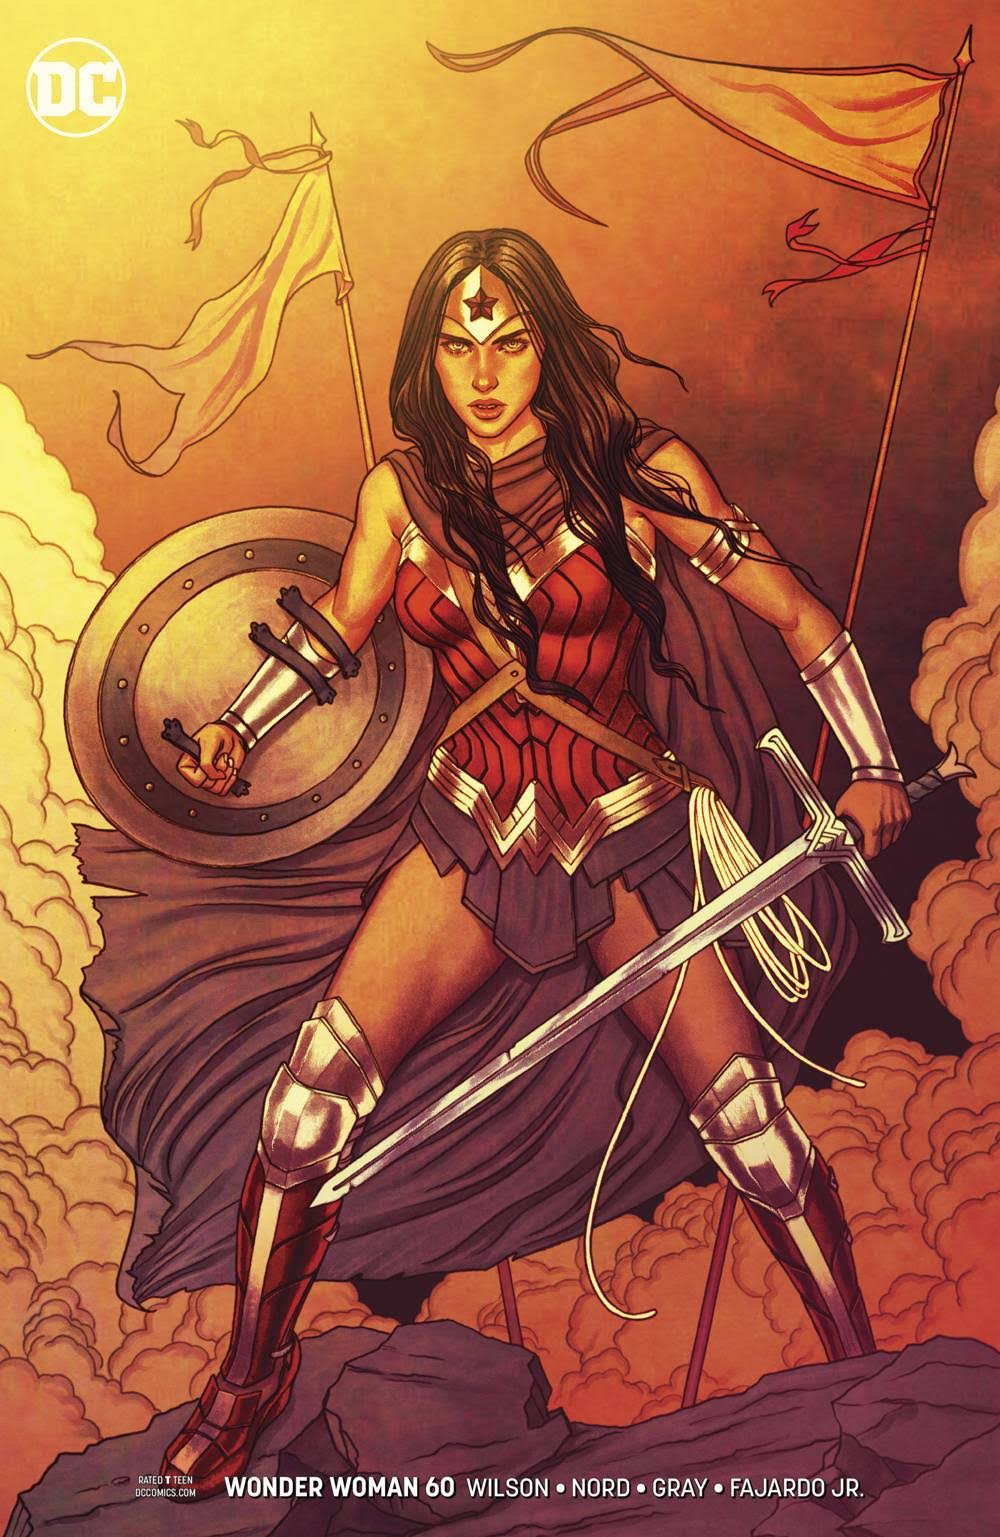 Wonder Woman Rebirth #1 - DC Comics